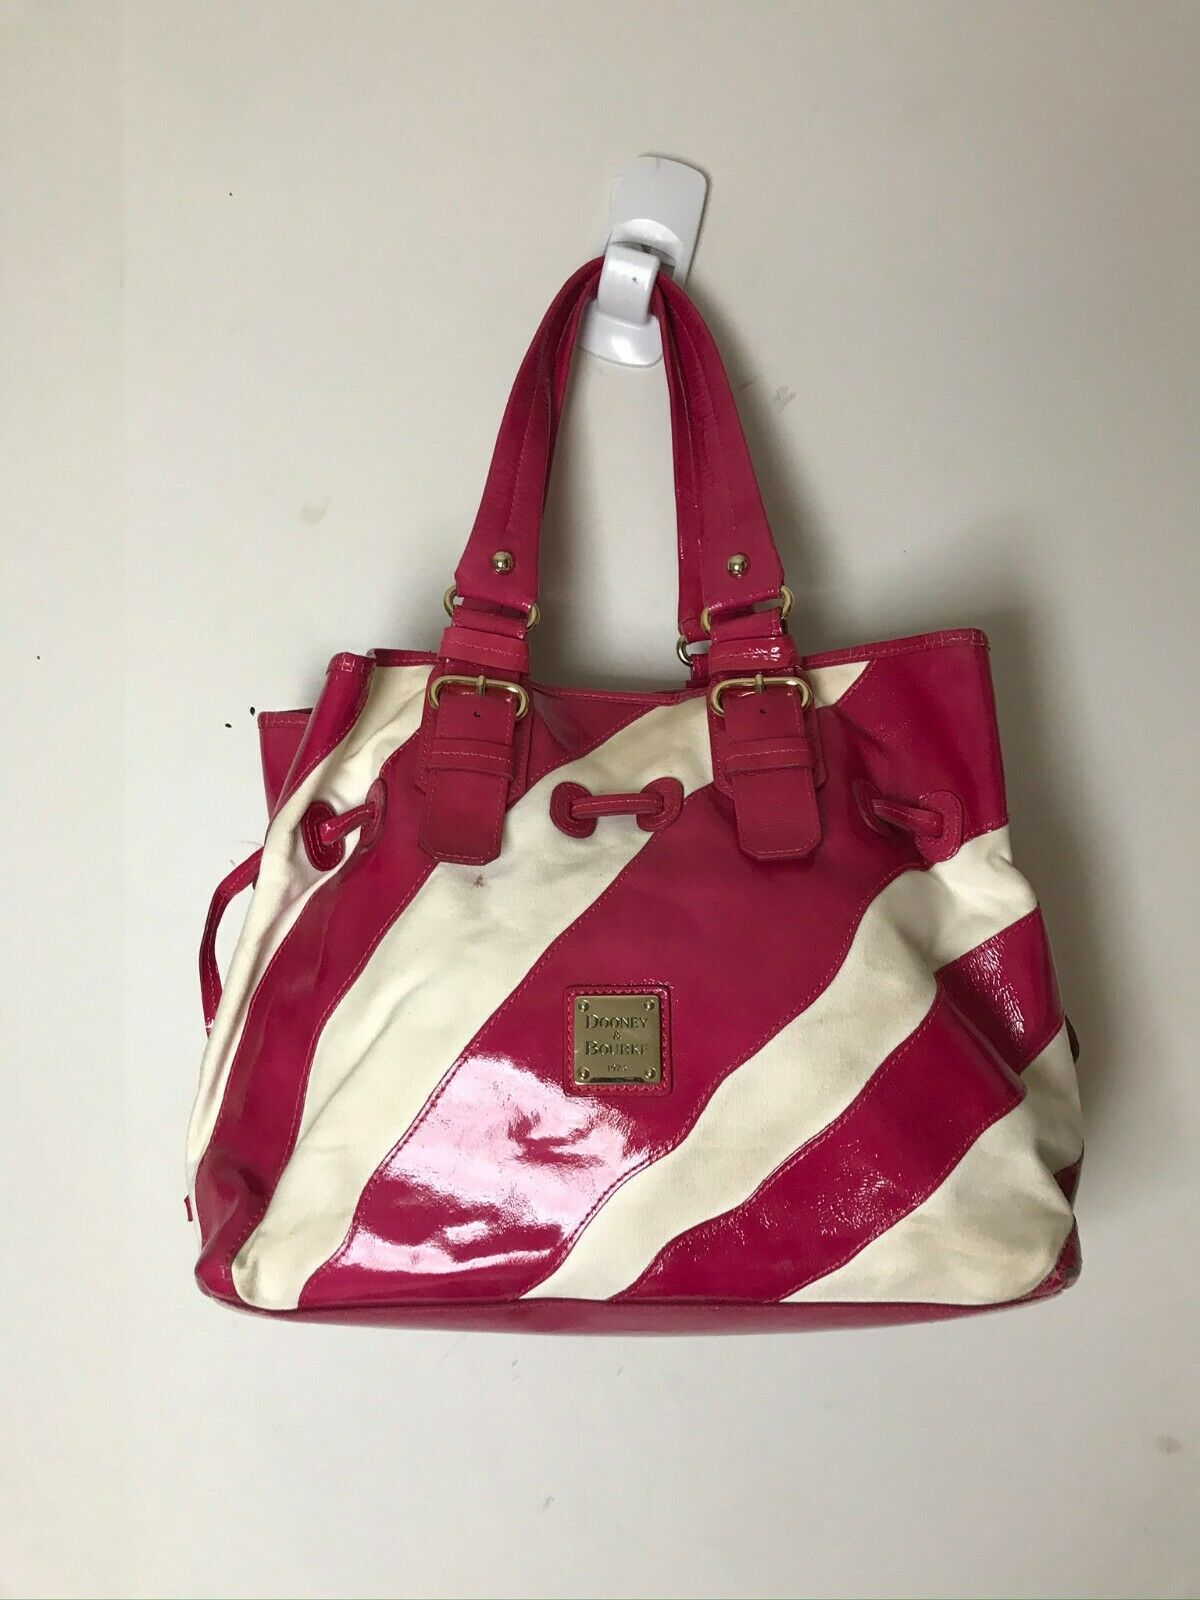 Dooney & Bourke Red/White Large Tote Bag